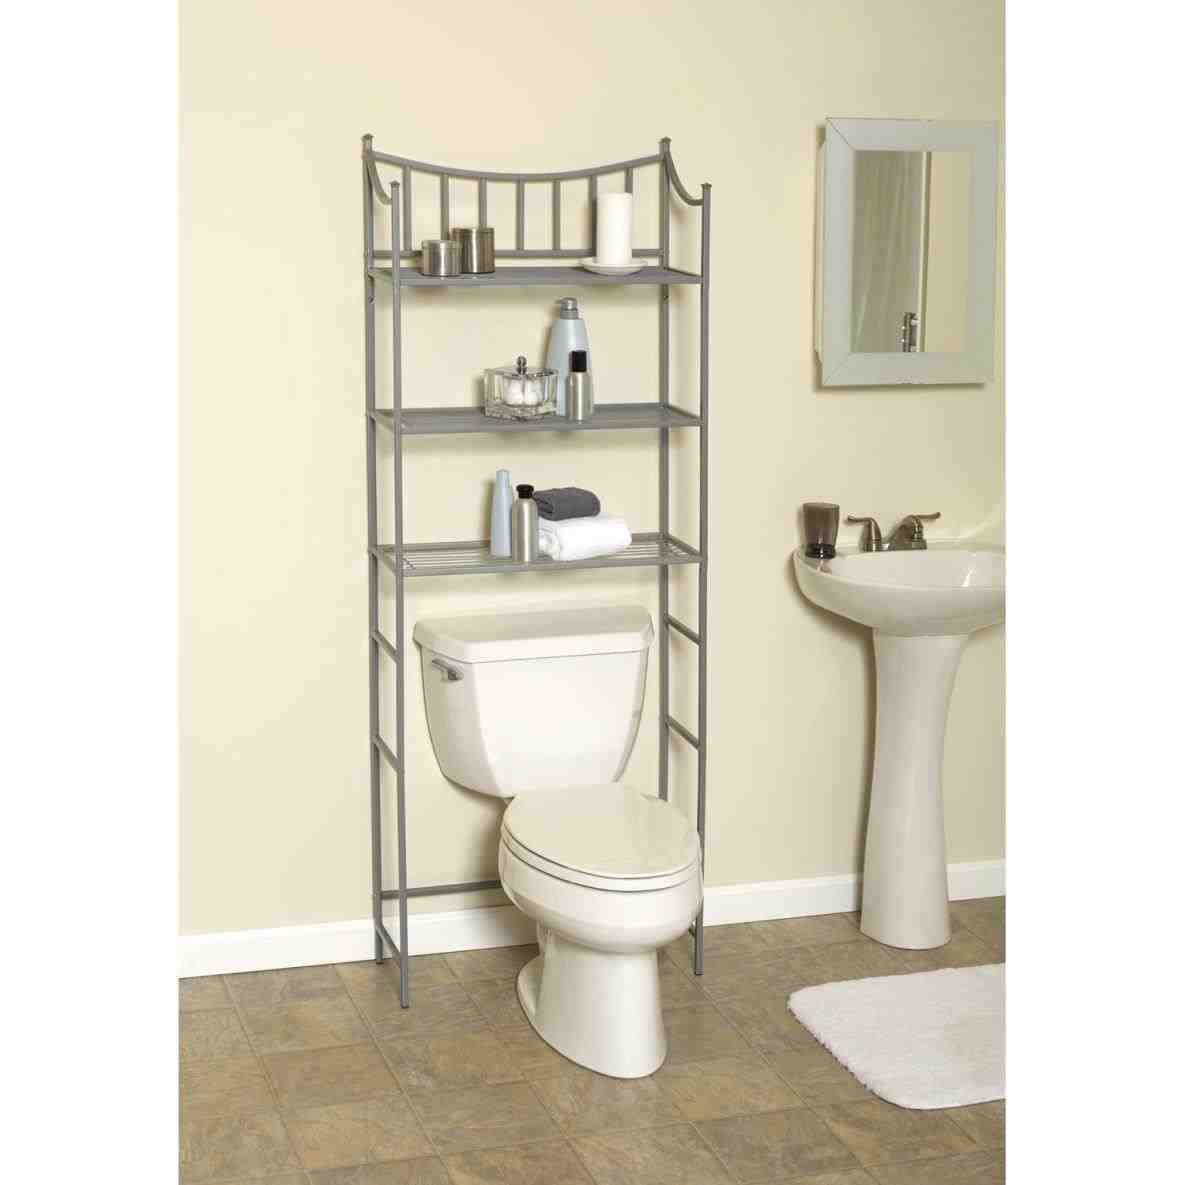 This over toilet shelf ikea - bathroom shelves nz bathroom shelves